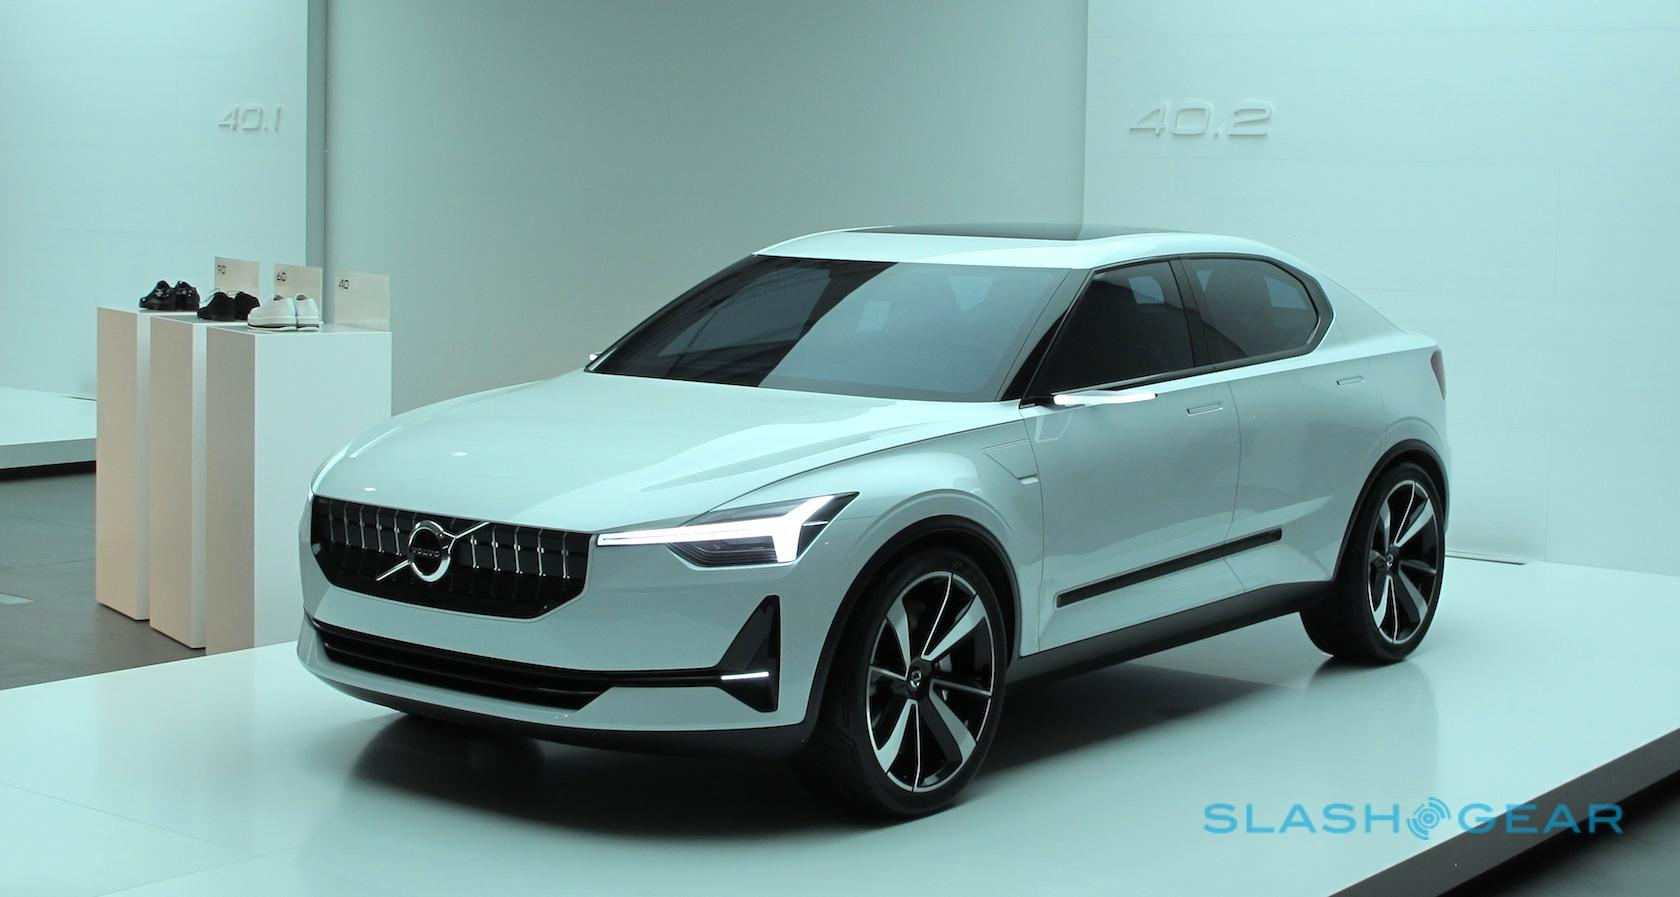 After The Volvo 40 2 Production Ev Plans A Fully Electric Version Of Xc40 Compact Crossover Is Basis Its Care By Car